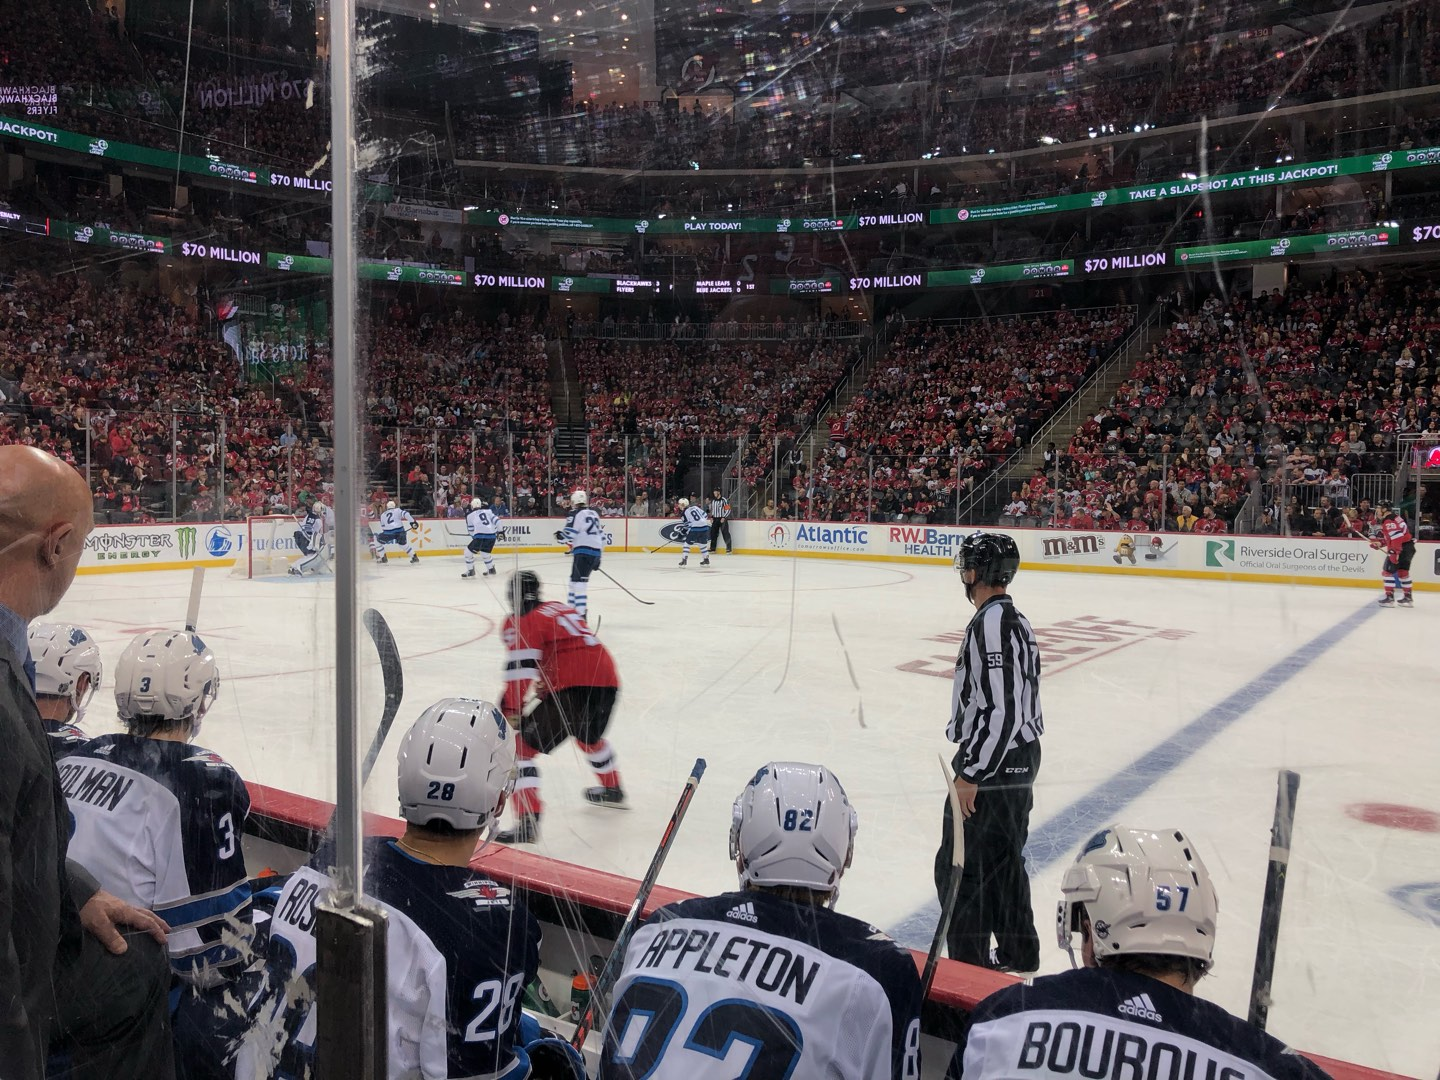 Prudential Center Section 19 Row 3